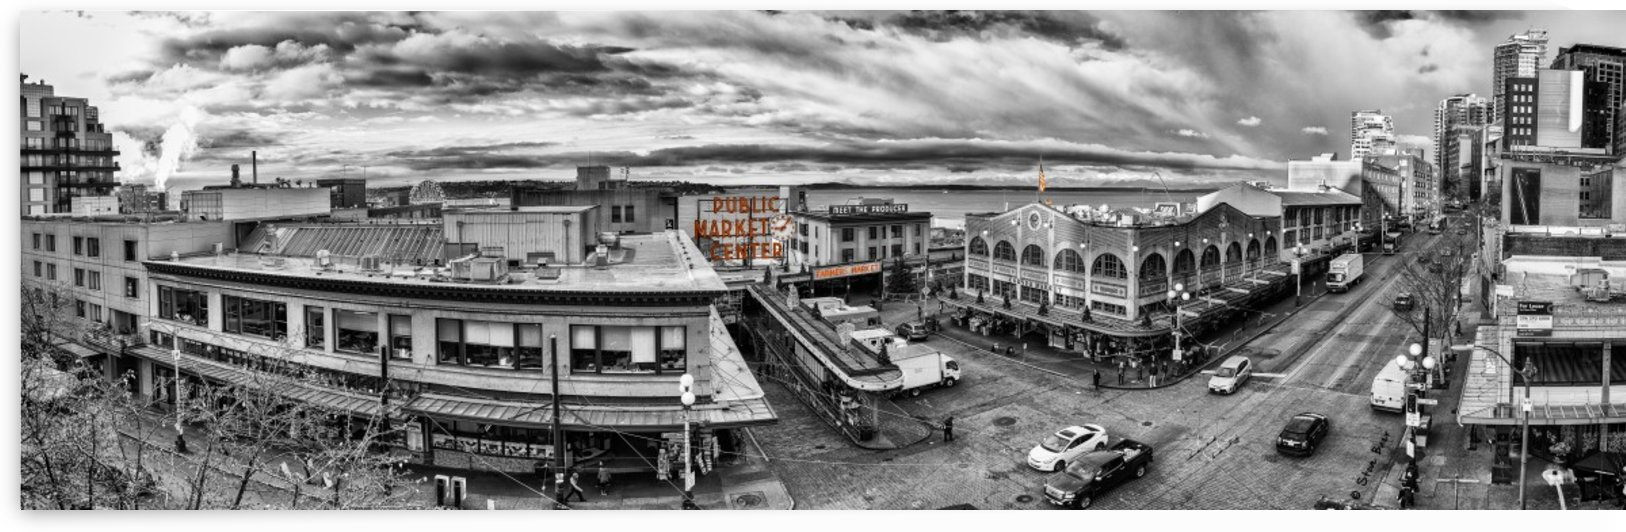 Seattle Pike Place Market Vista in Black and White by Steve